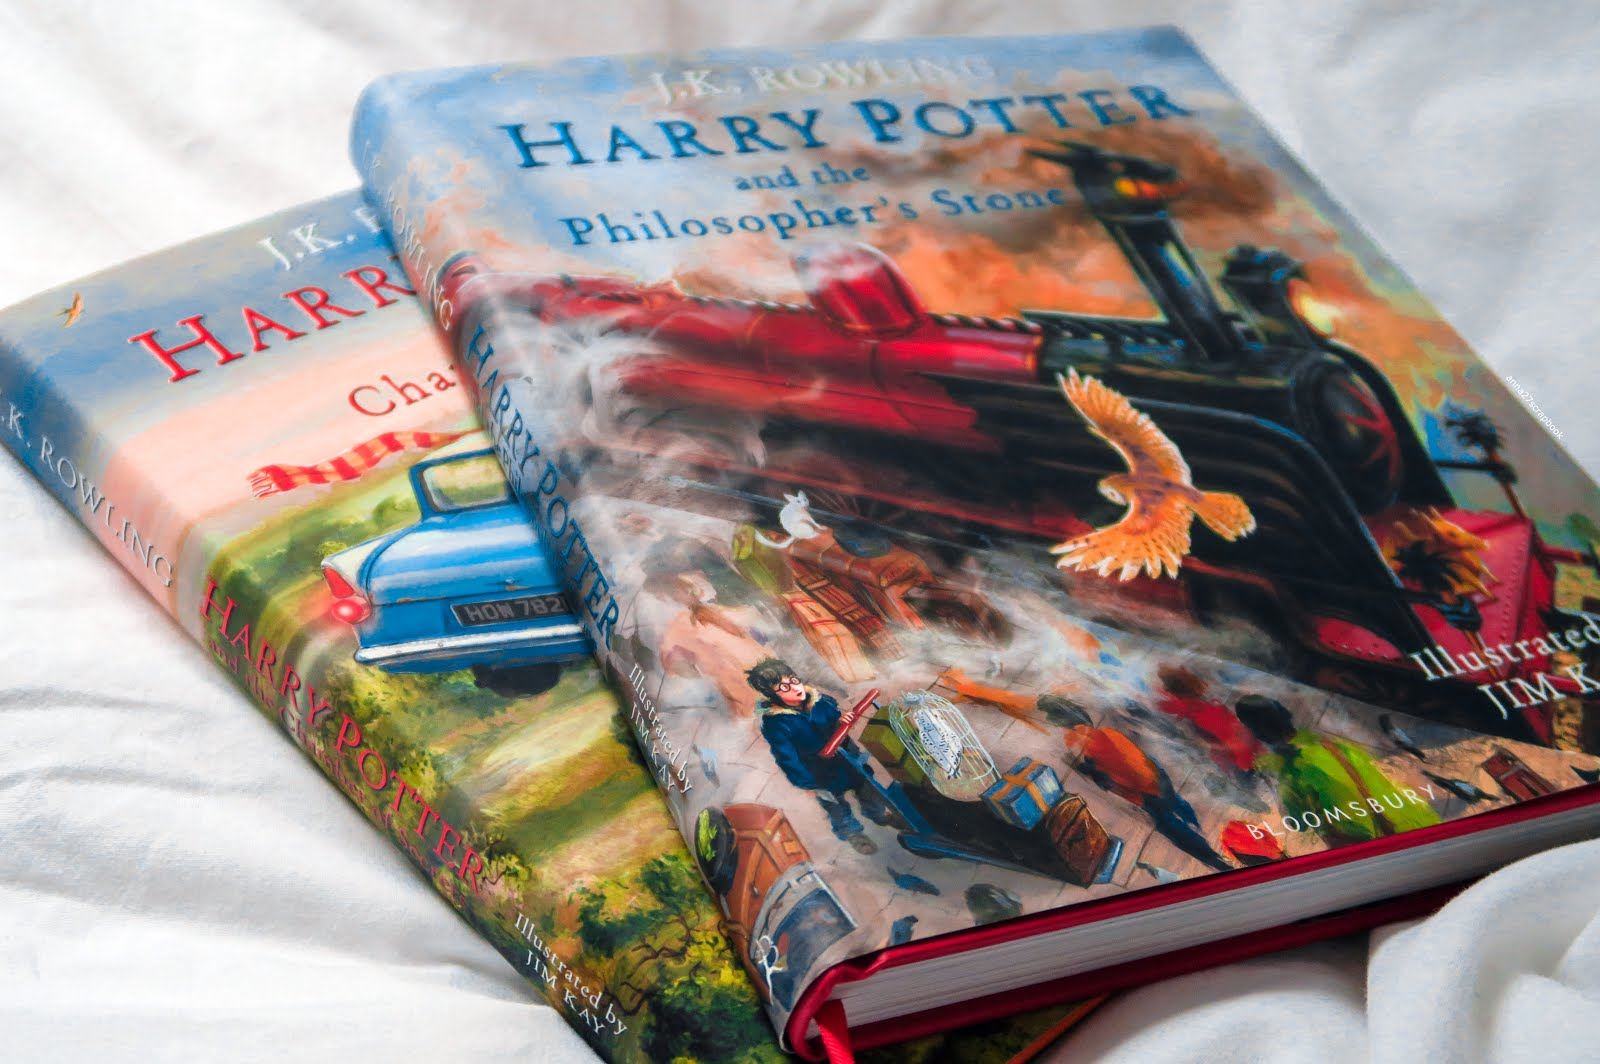 HARRY POTTER ILLUSTRATED EDITION BOOKS PHILOSOPHERS STONE AND CHAMBER OF SECRETS | ANNA TWENTY SEVEN